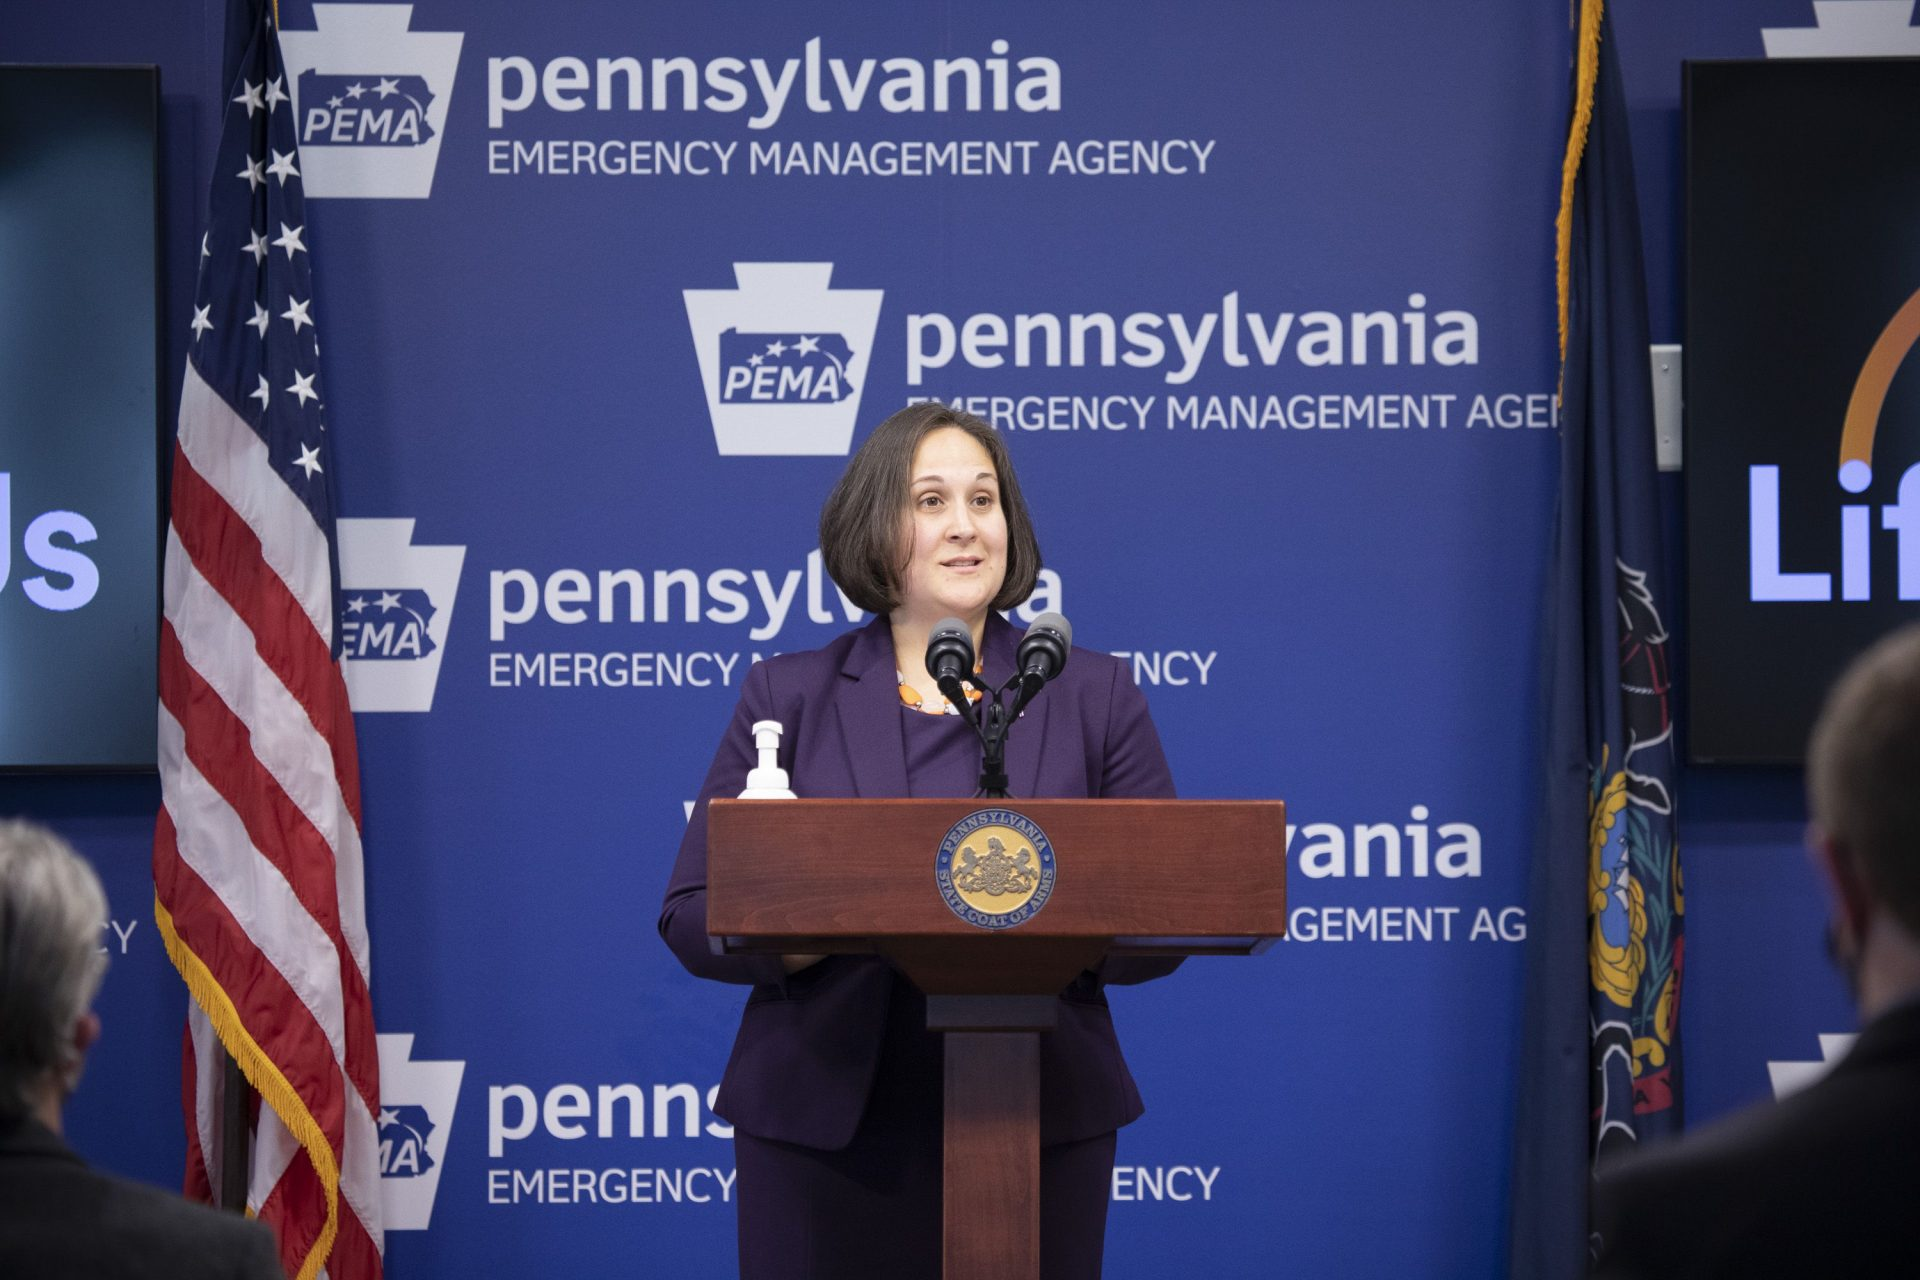 Jennifer Smith, secretary of the Pennsylvania Department of Drug and Alcohol Programs, said her agency has limited responsibility for treatment facilities, despite providing the licenses that allow them to operate.